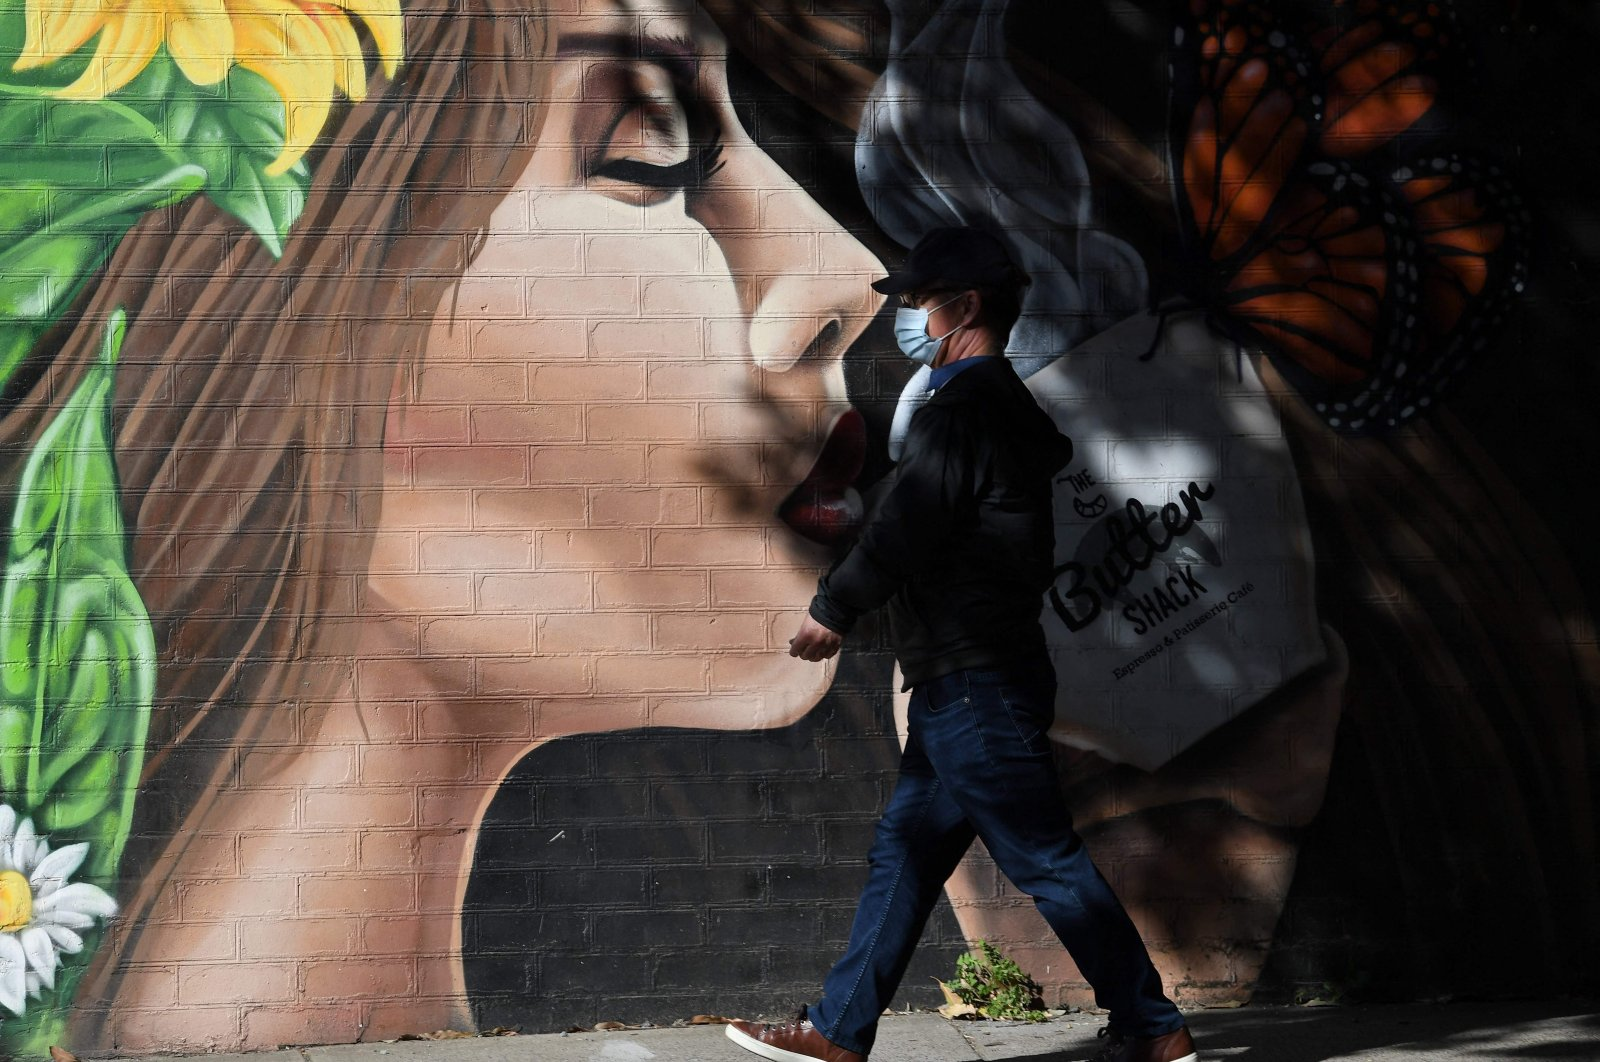 A man wearing a face mask walks in front of a cafe in a suburb of Sydney, as the city's more than 5 million people are enduring their seventh week under stay-at-home orders, Sydney, Australia, Aug. 11, 2021. (AFP Photo)